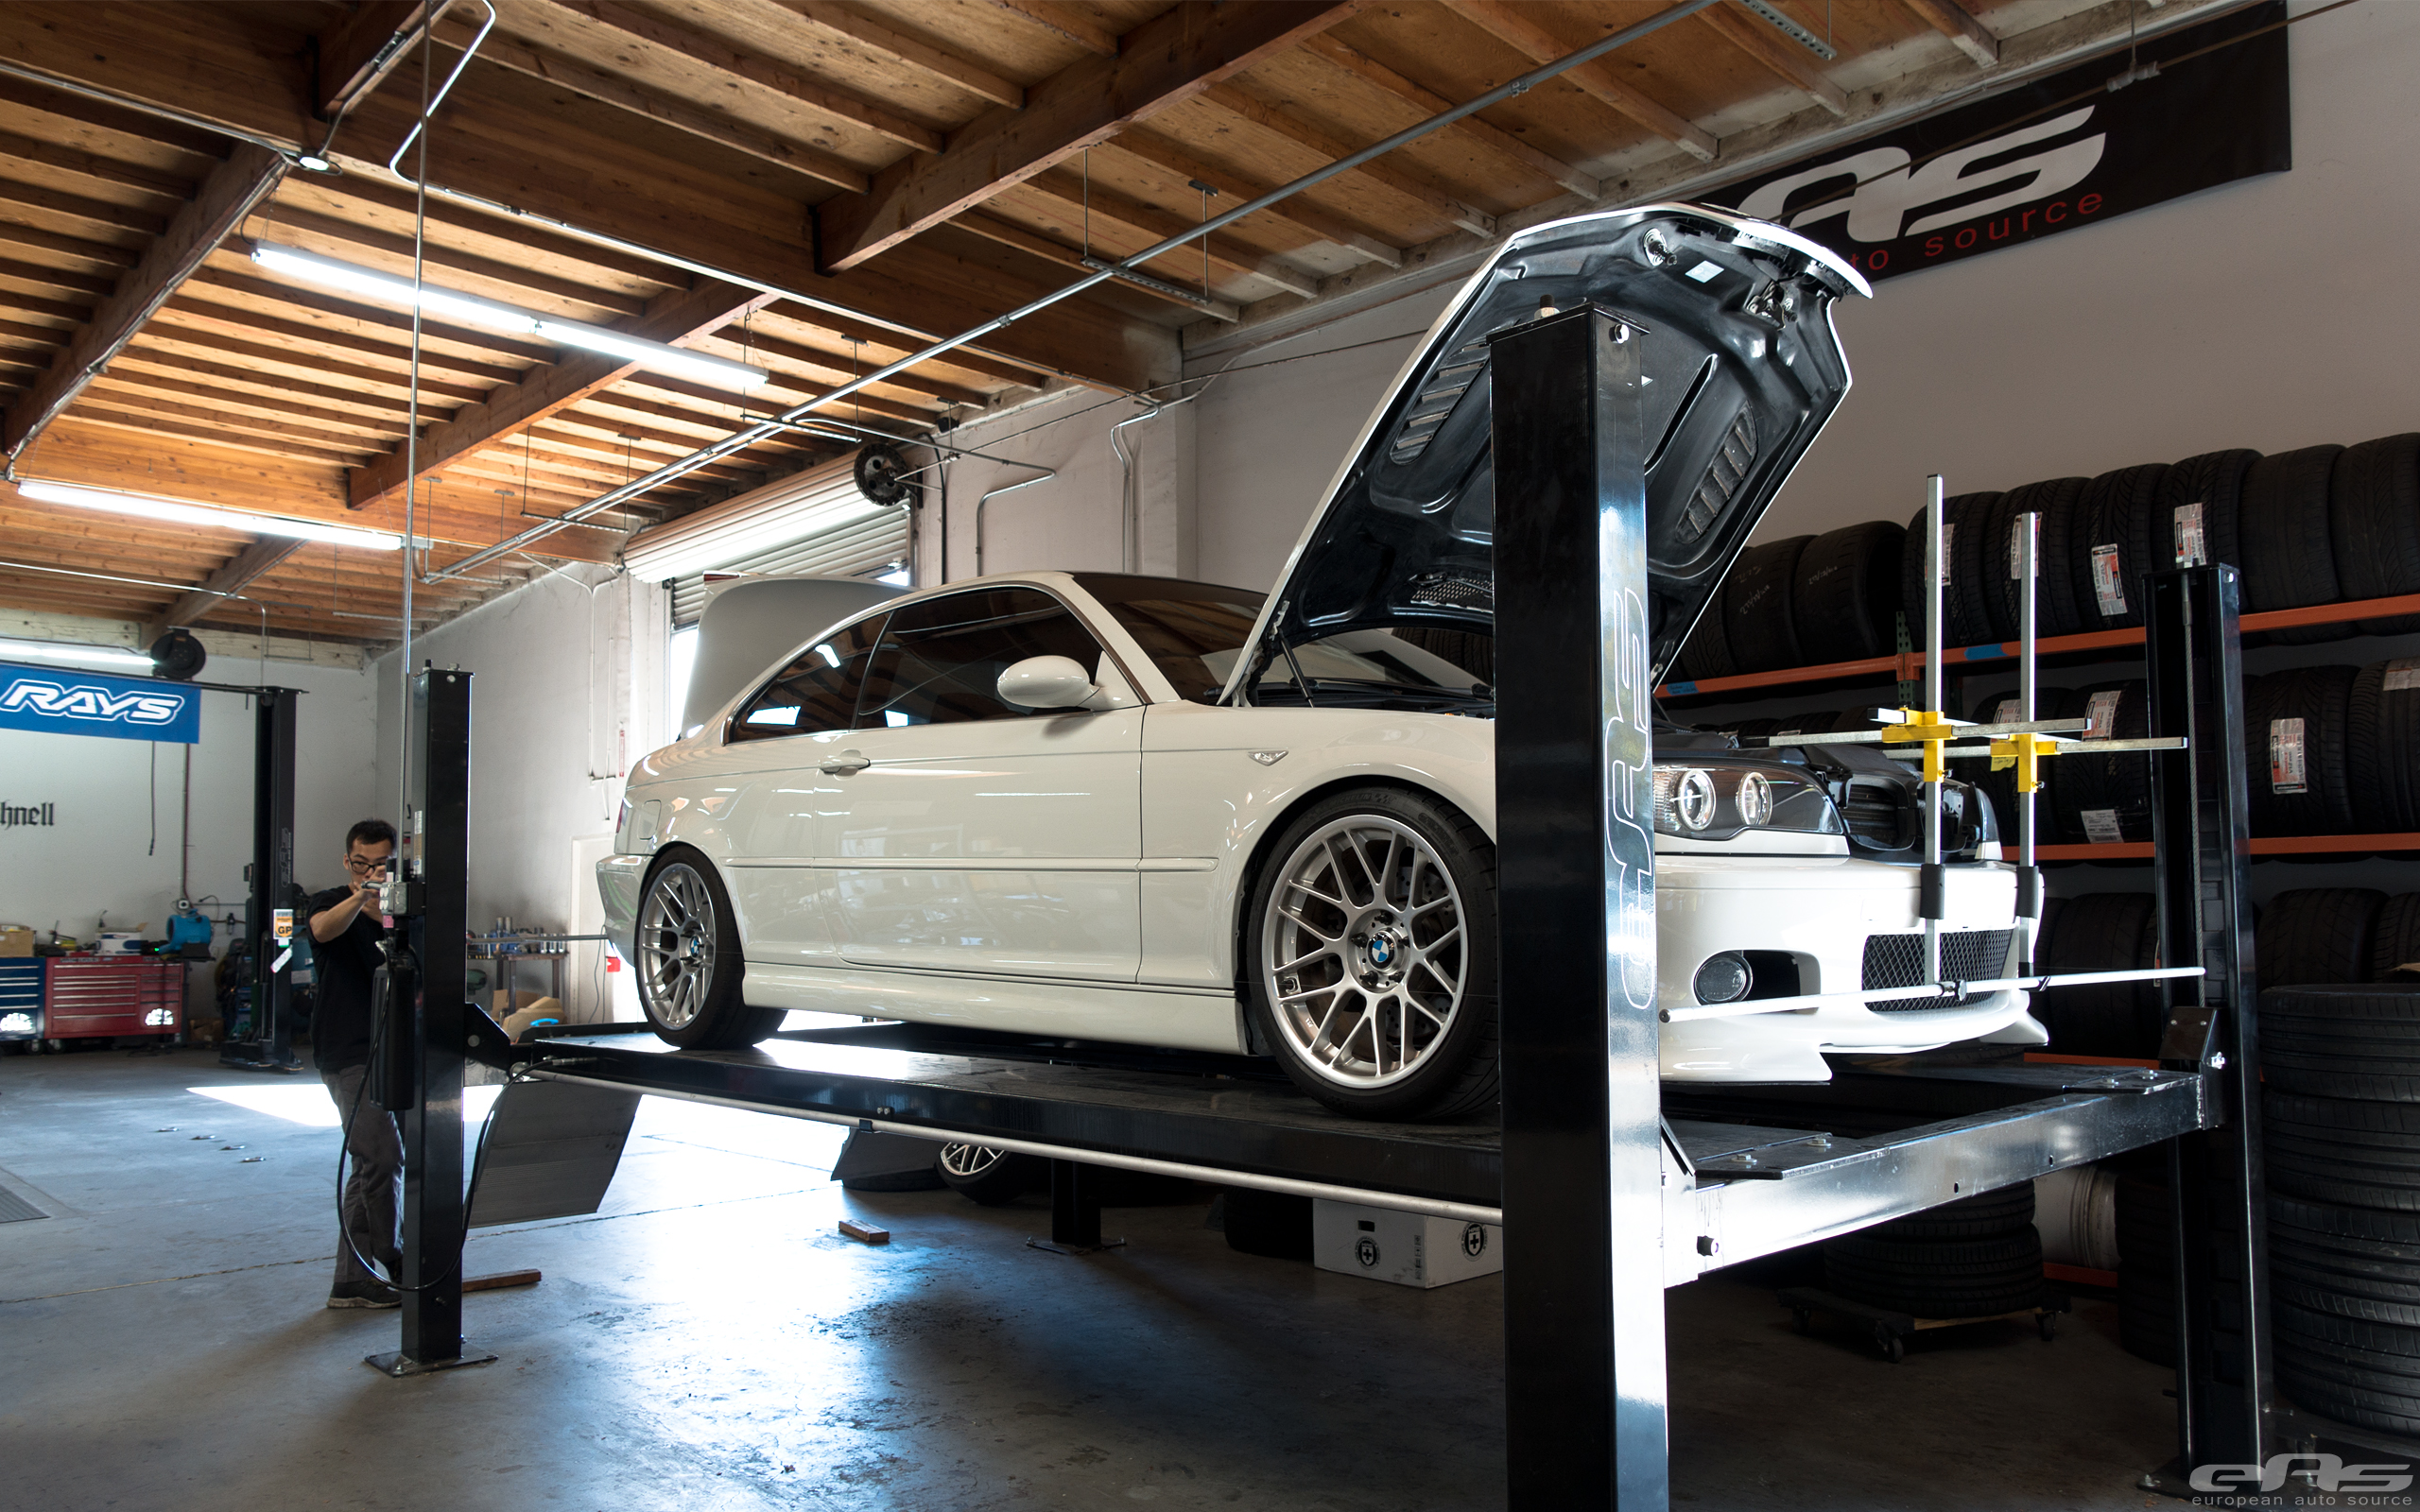 Alpine White Bmw E46 330ci Tuning Build